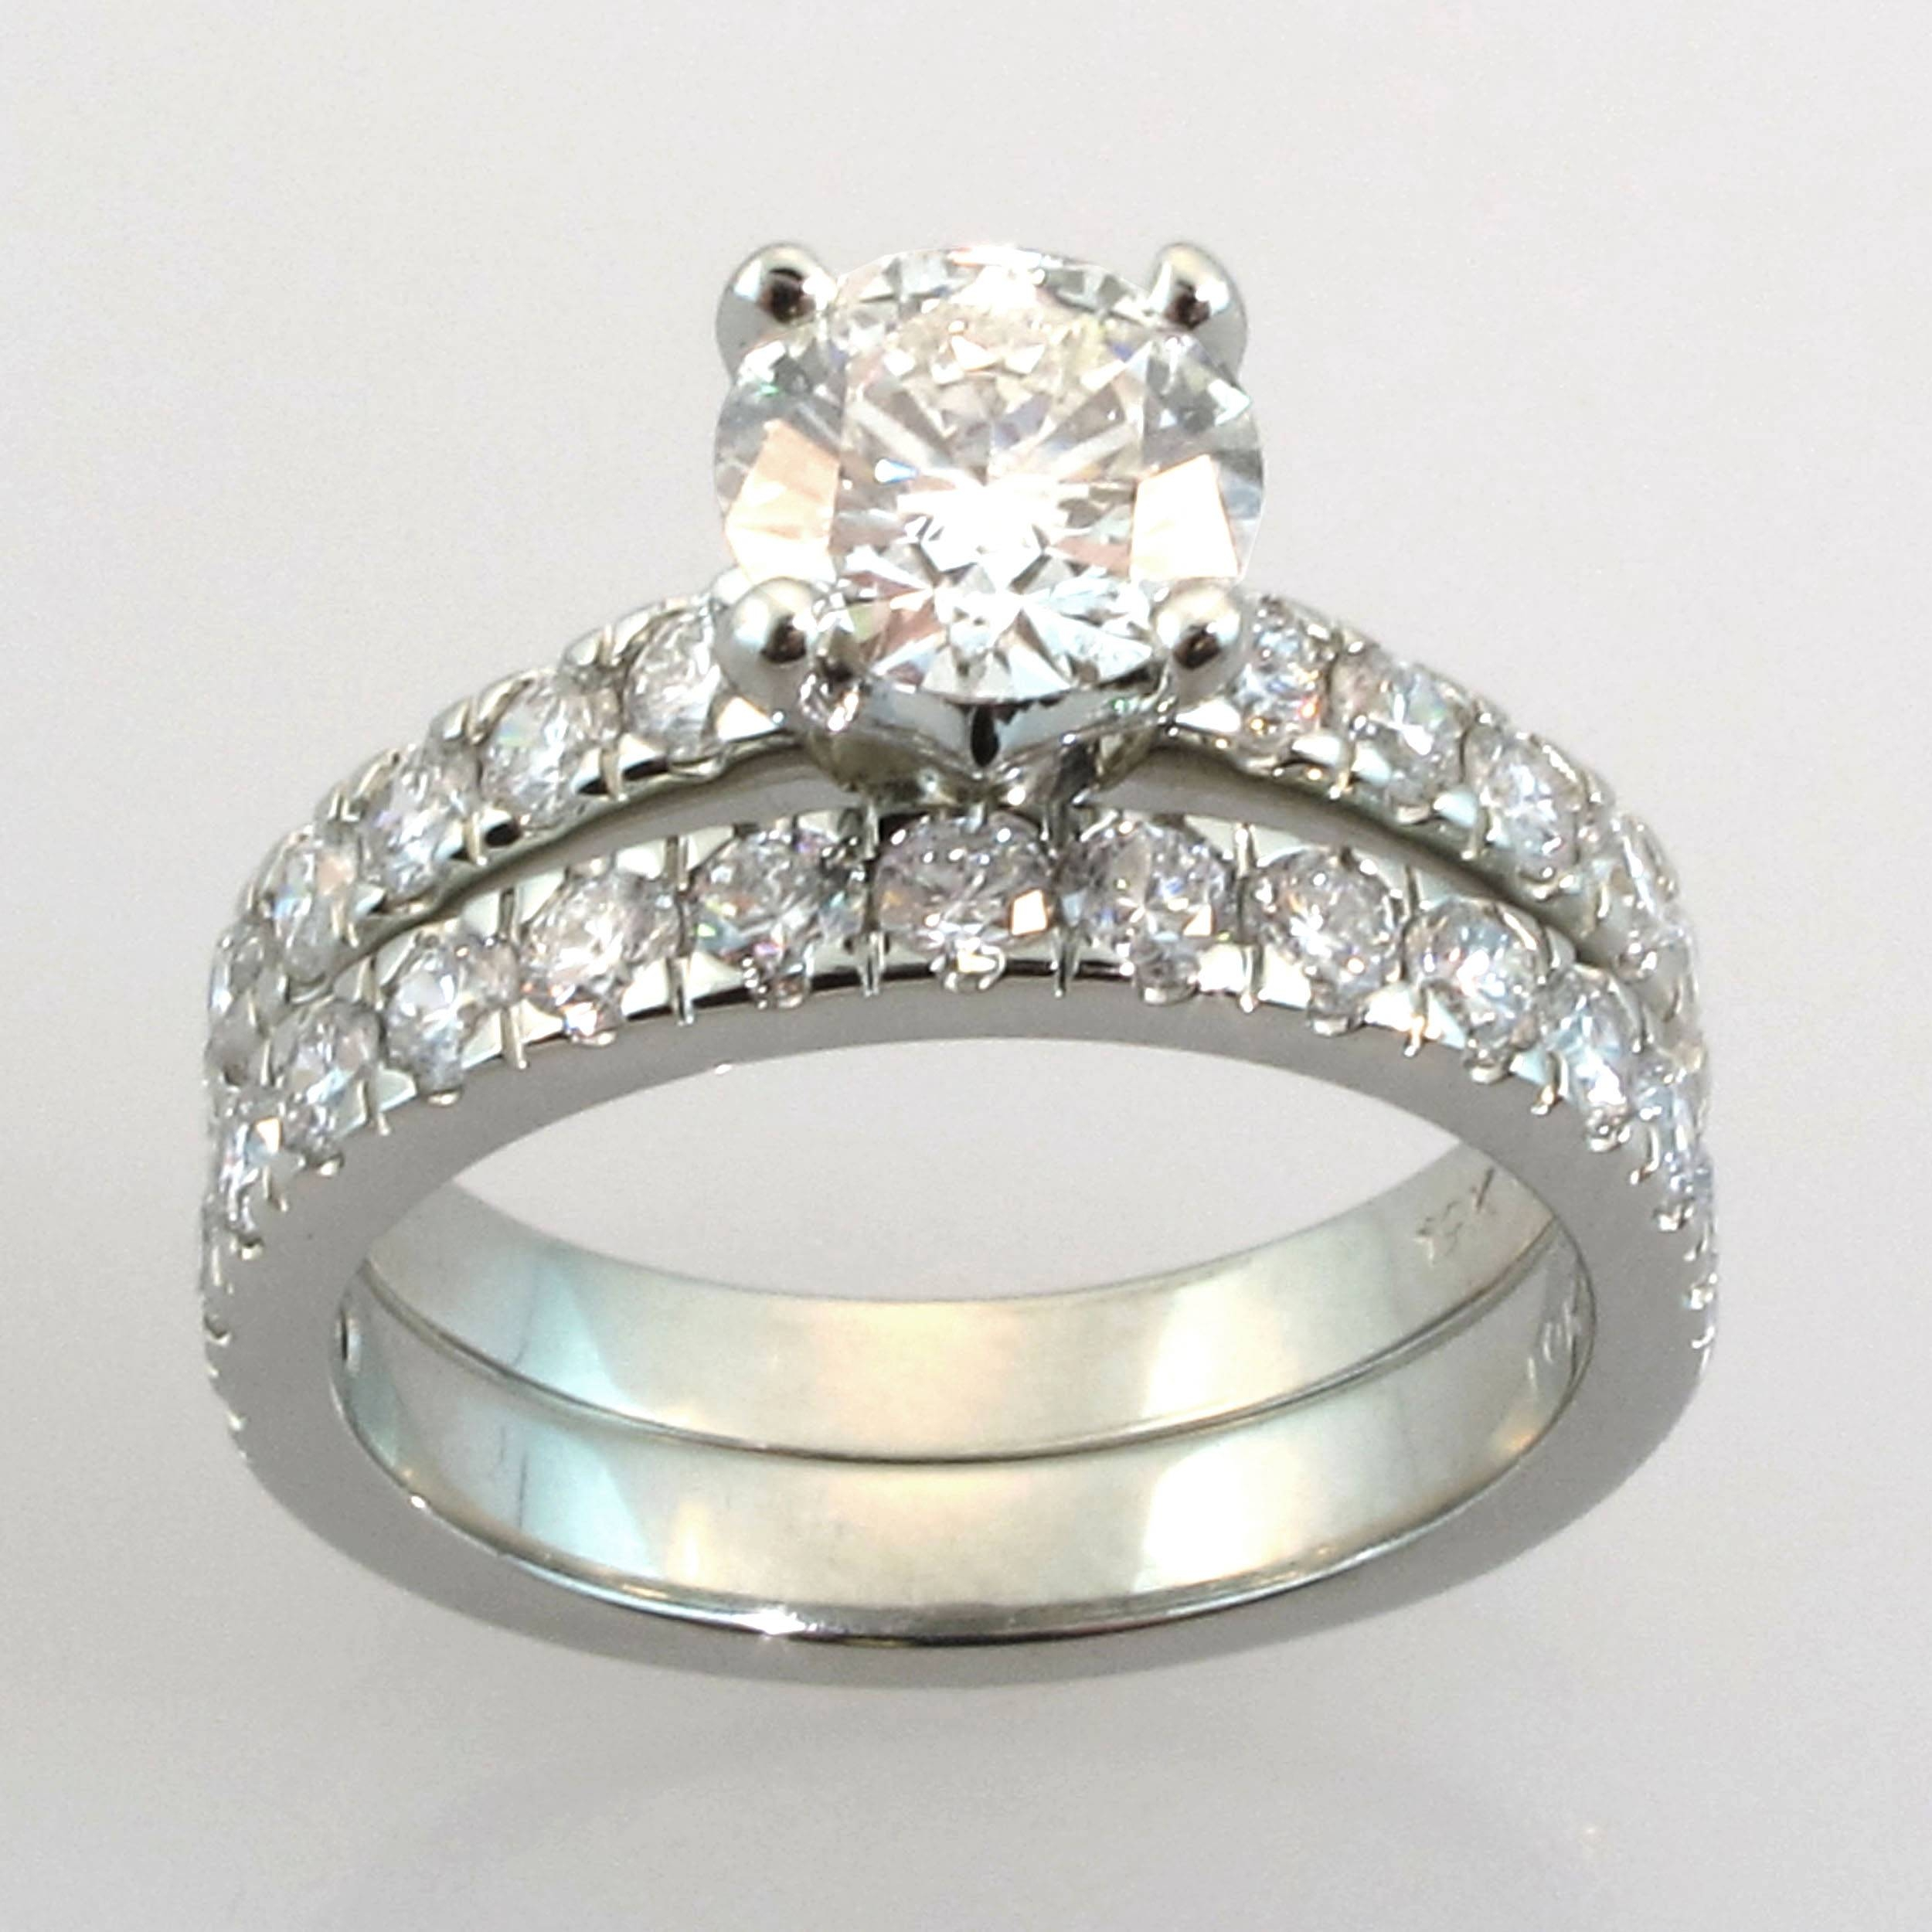 style wedding today engagement put vote rings gold now rose it winner bridal ring